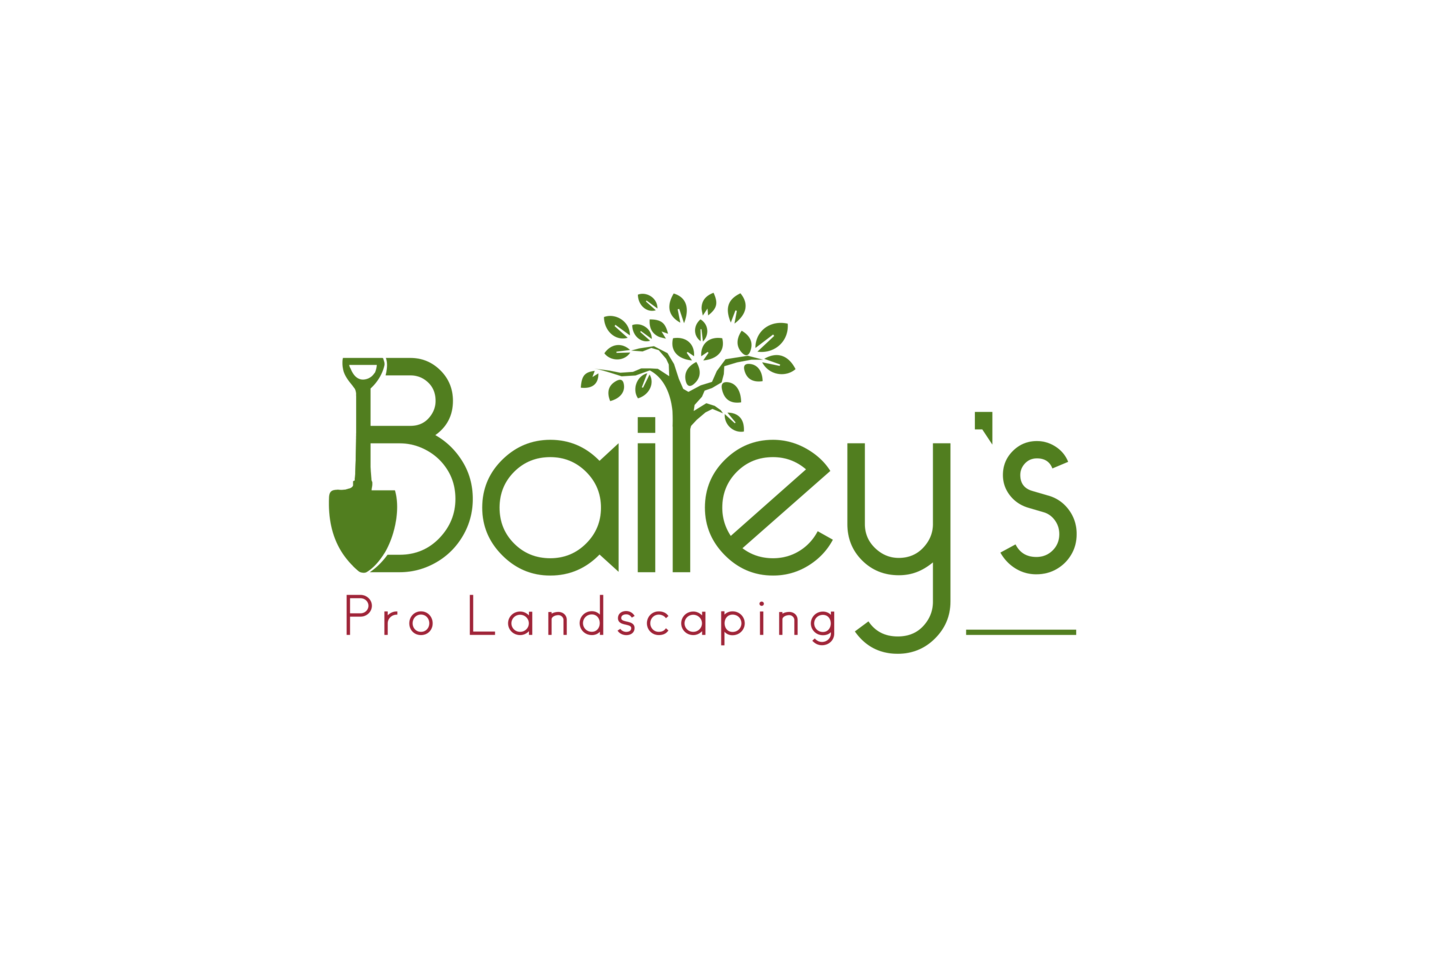 Baileys Pro Landscaping